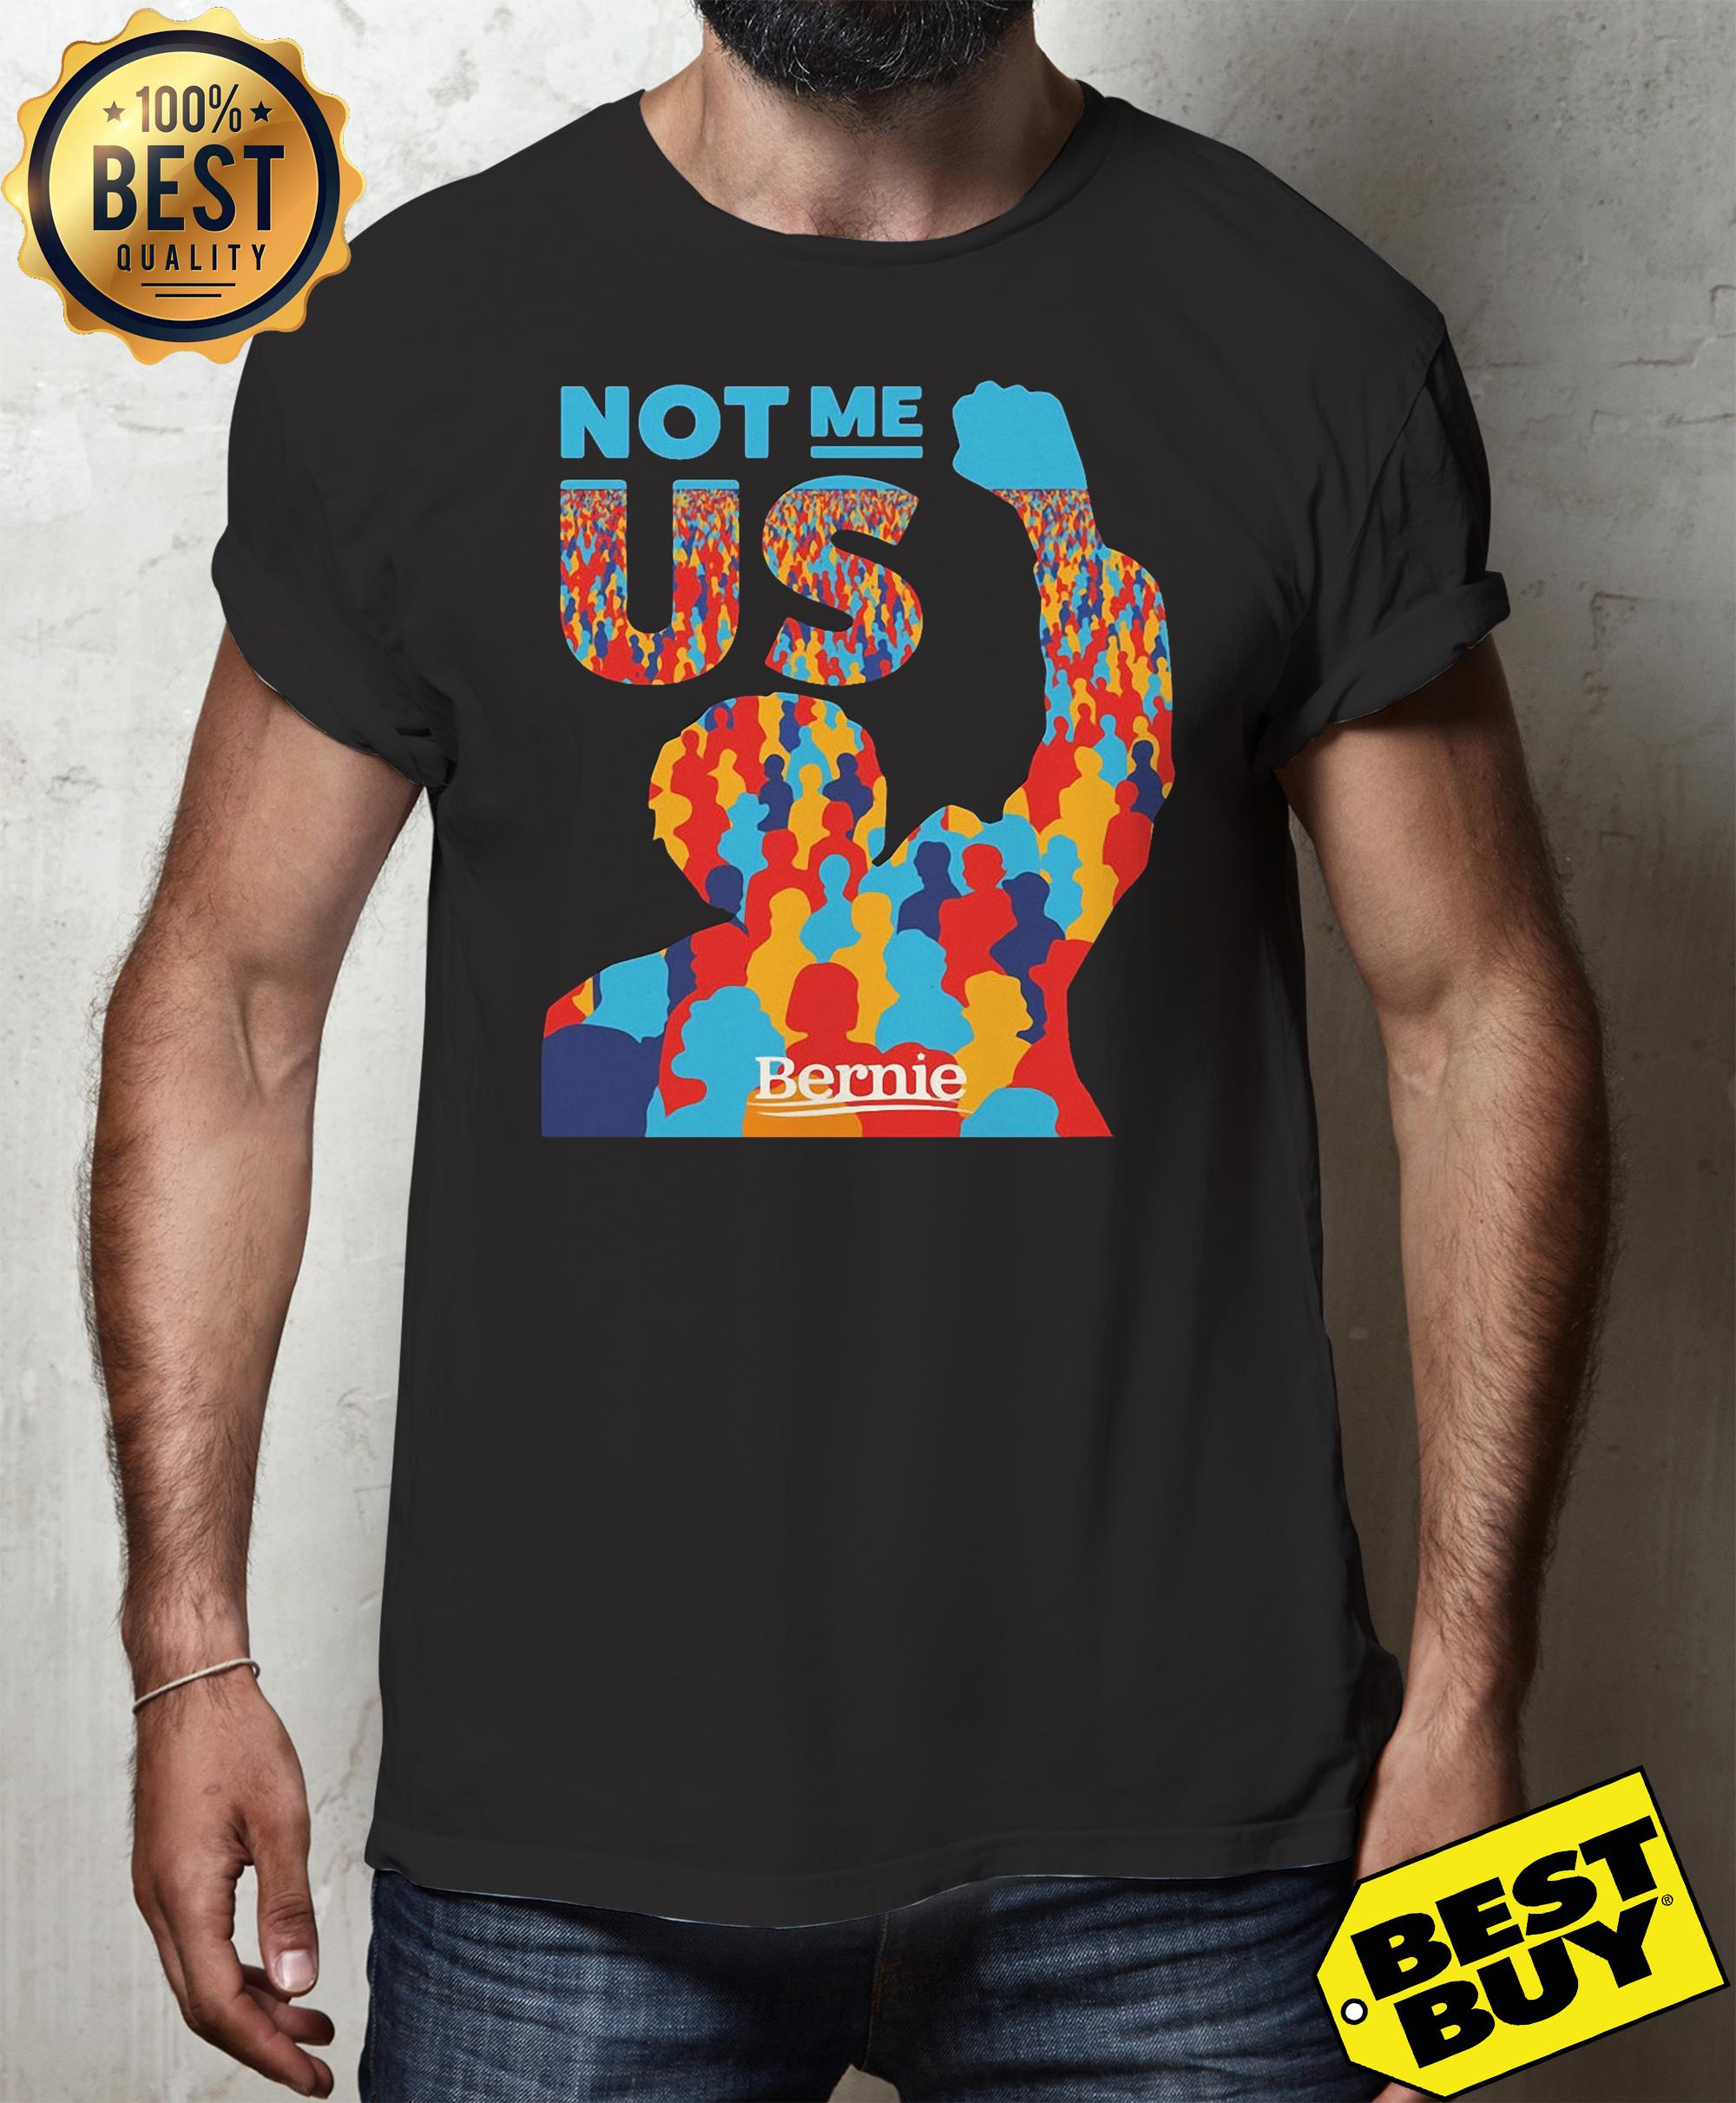 Not me us Bernie Sanders shirt